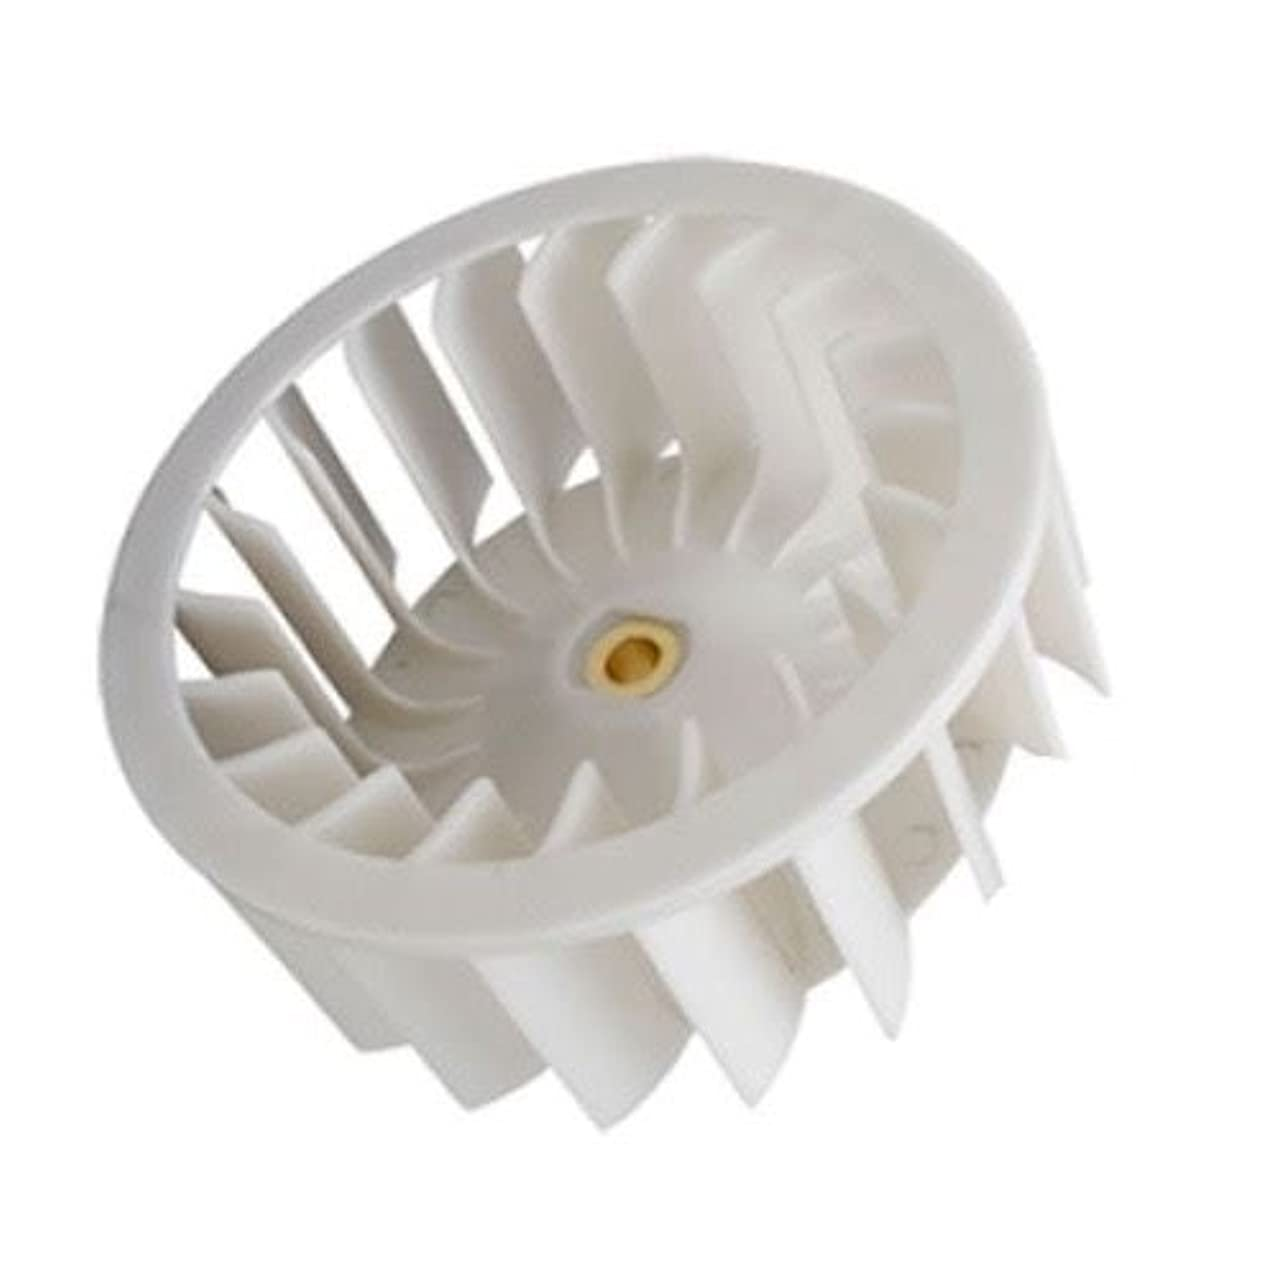 1268176 - RCA Aftermarket Replacement Dryer Blower Wheel